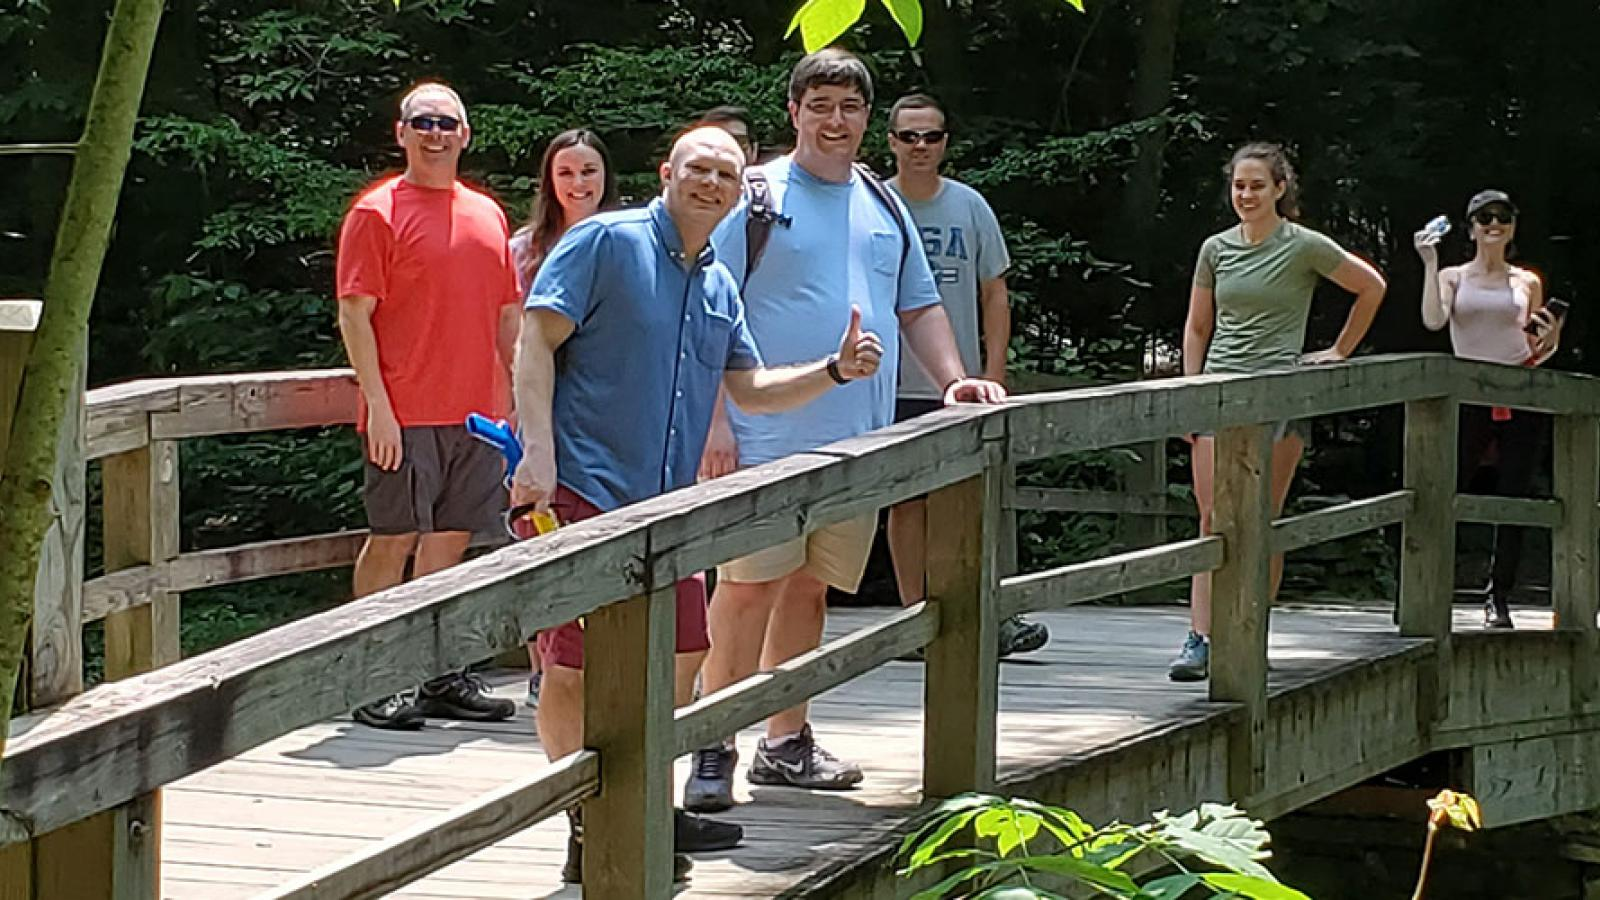 People standing on a bridge in the woods